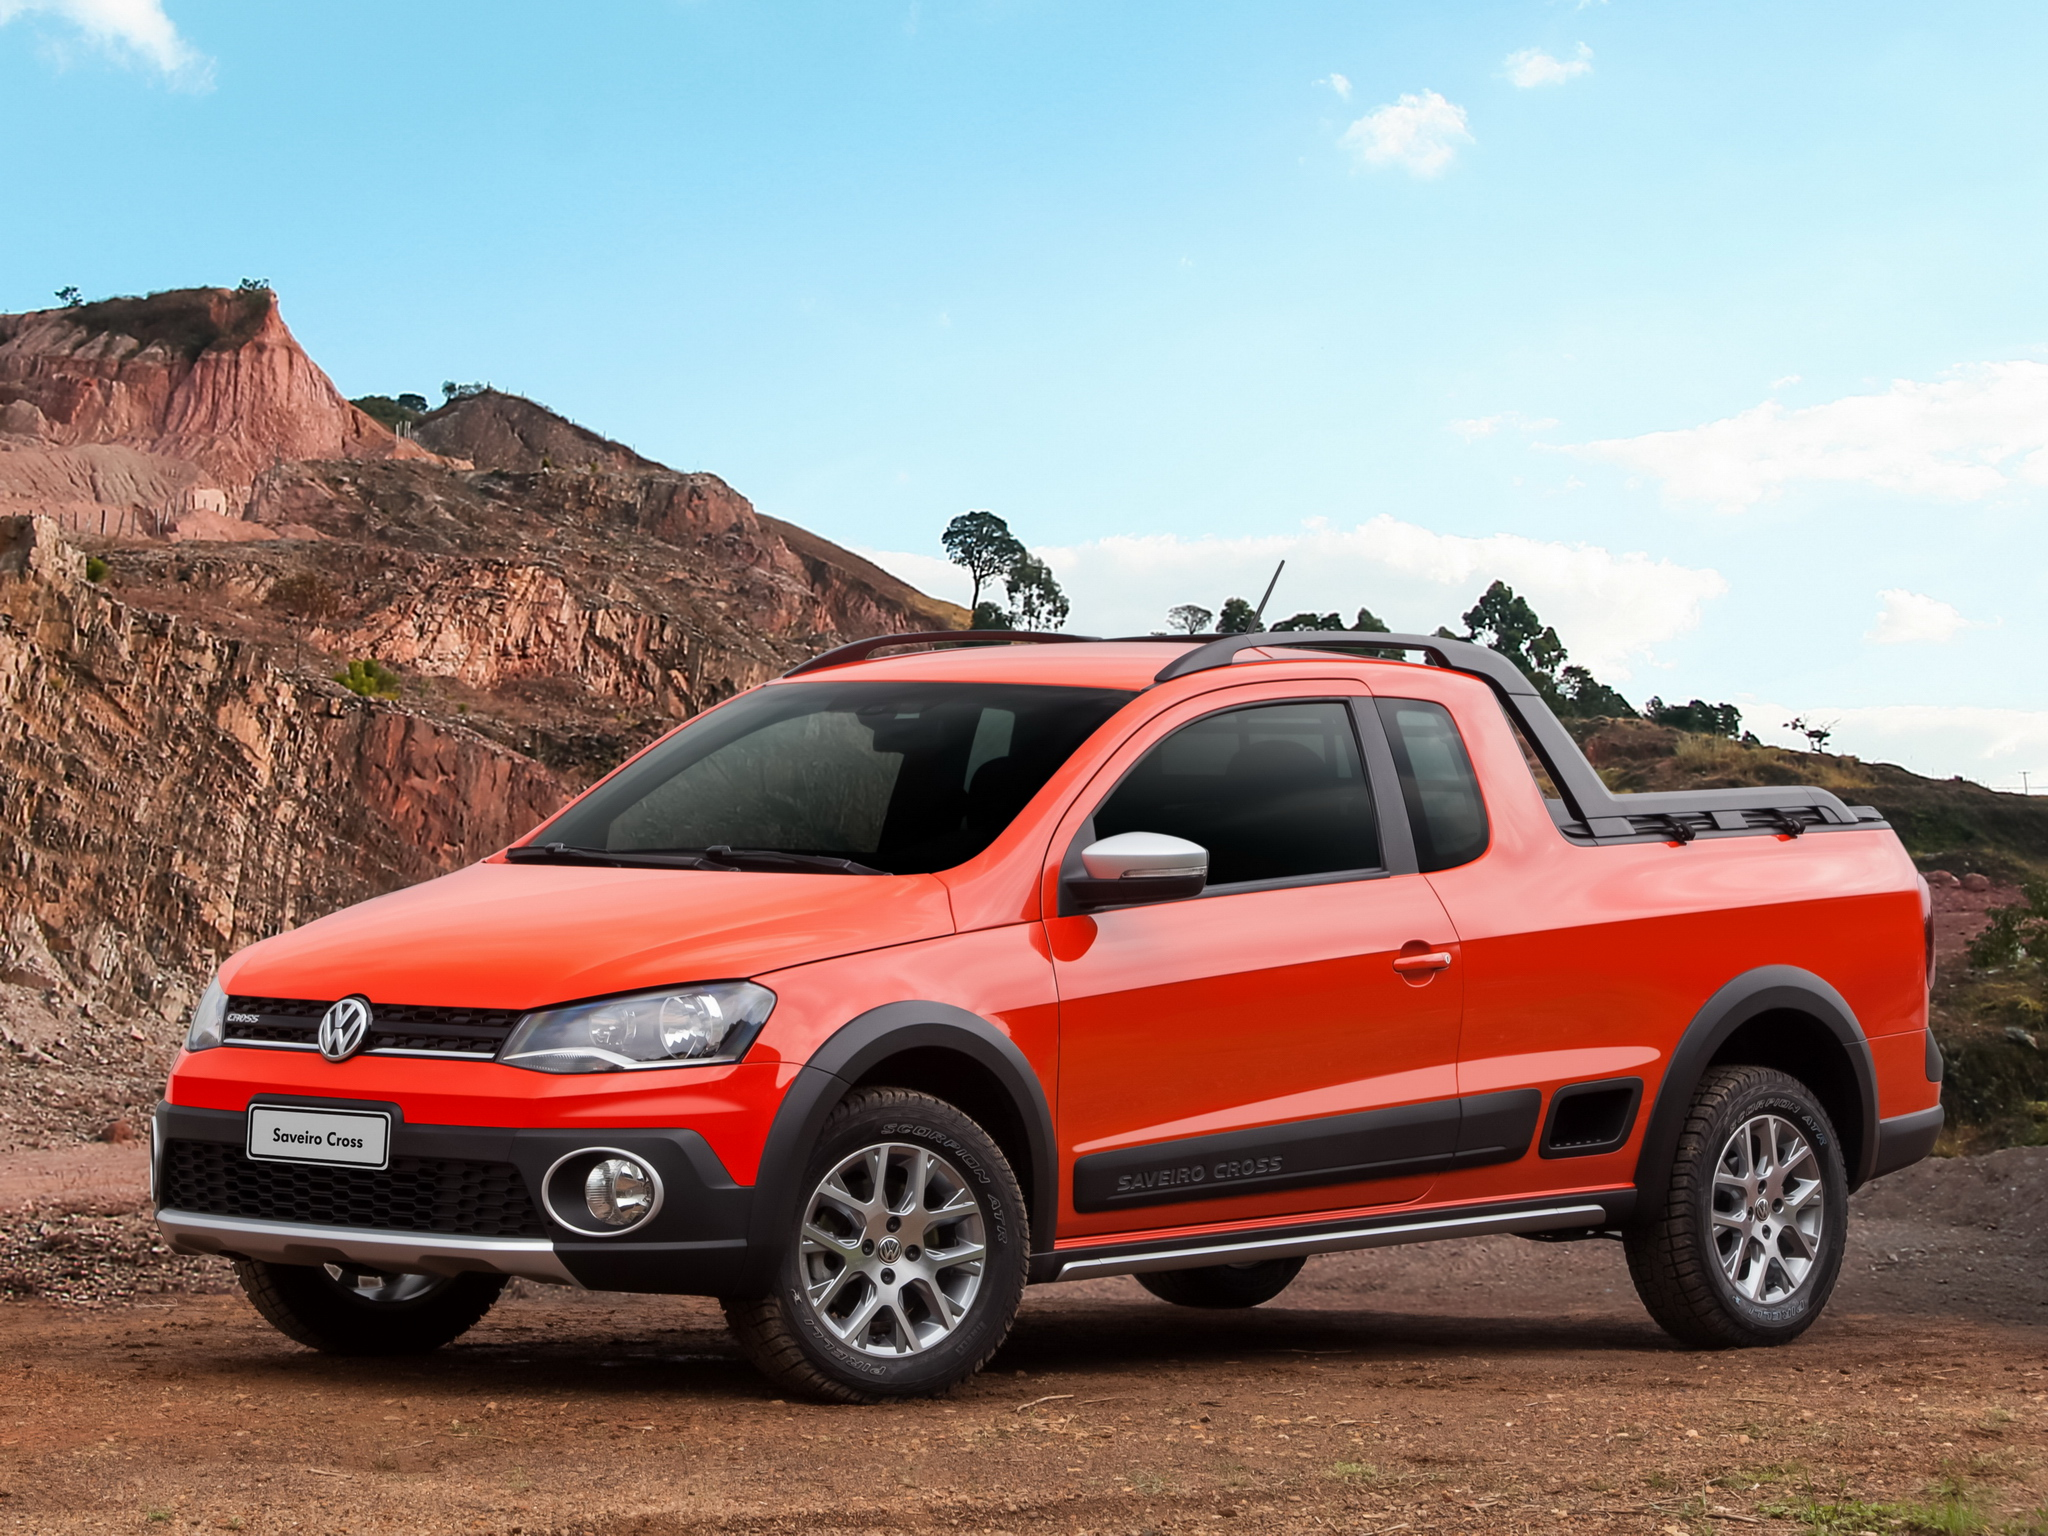 2014 Volkswagen Saveiro Cross Is A Funky Brazilian Pickup